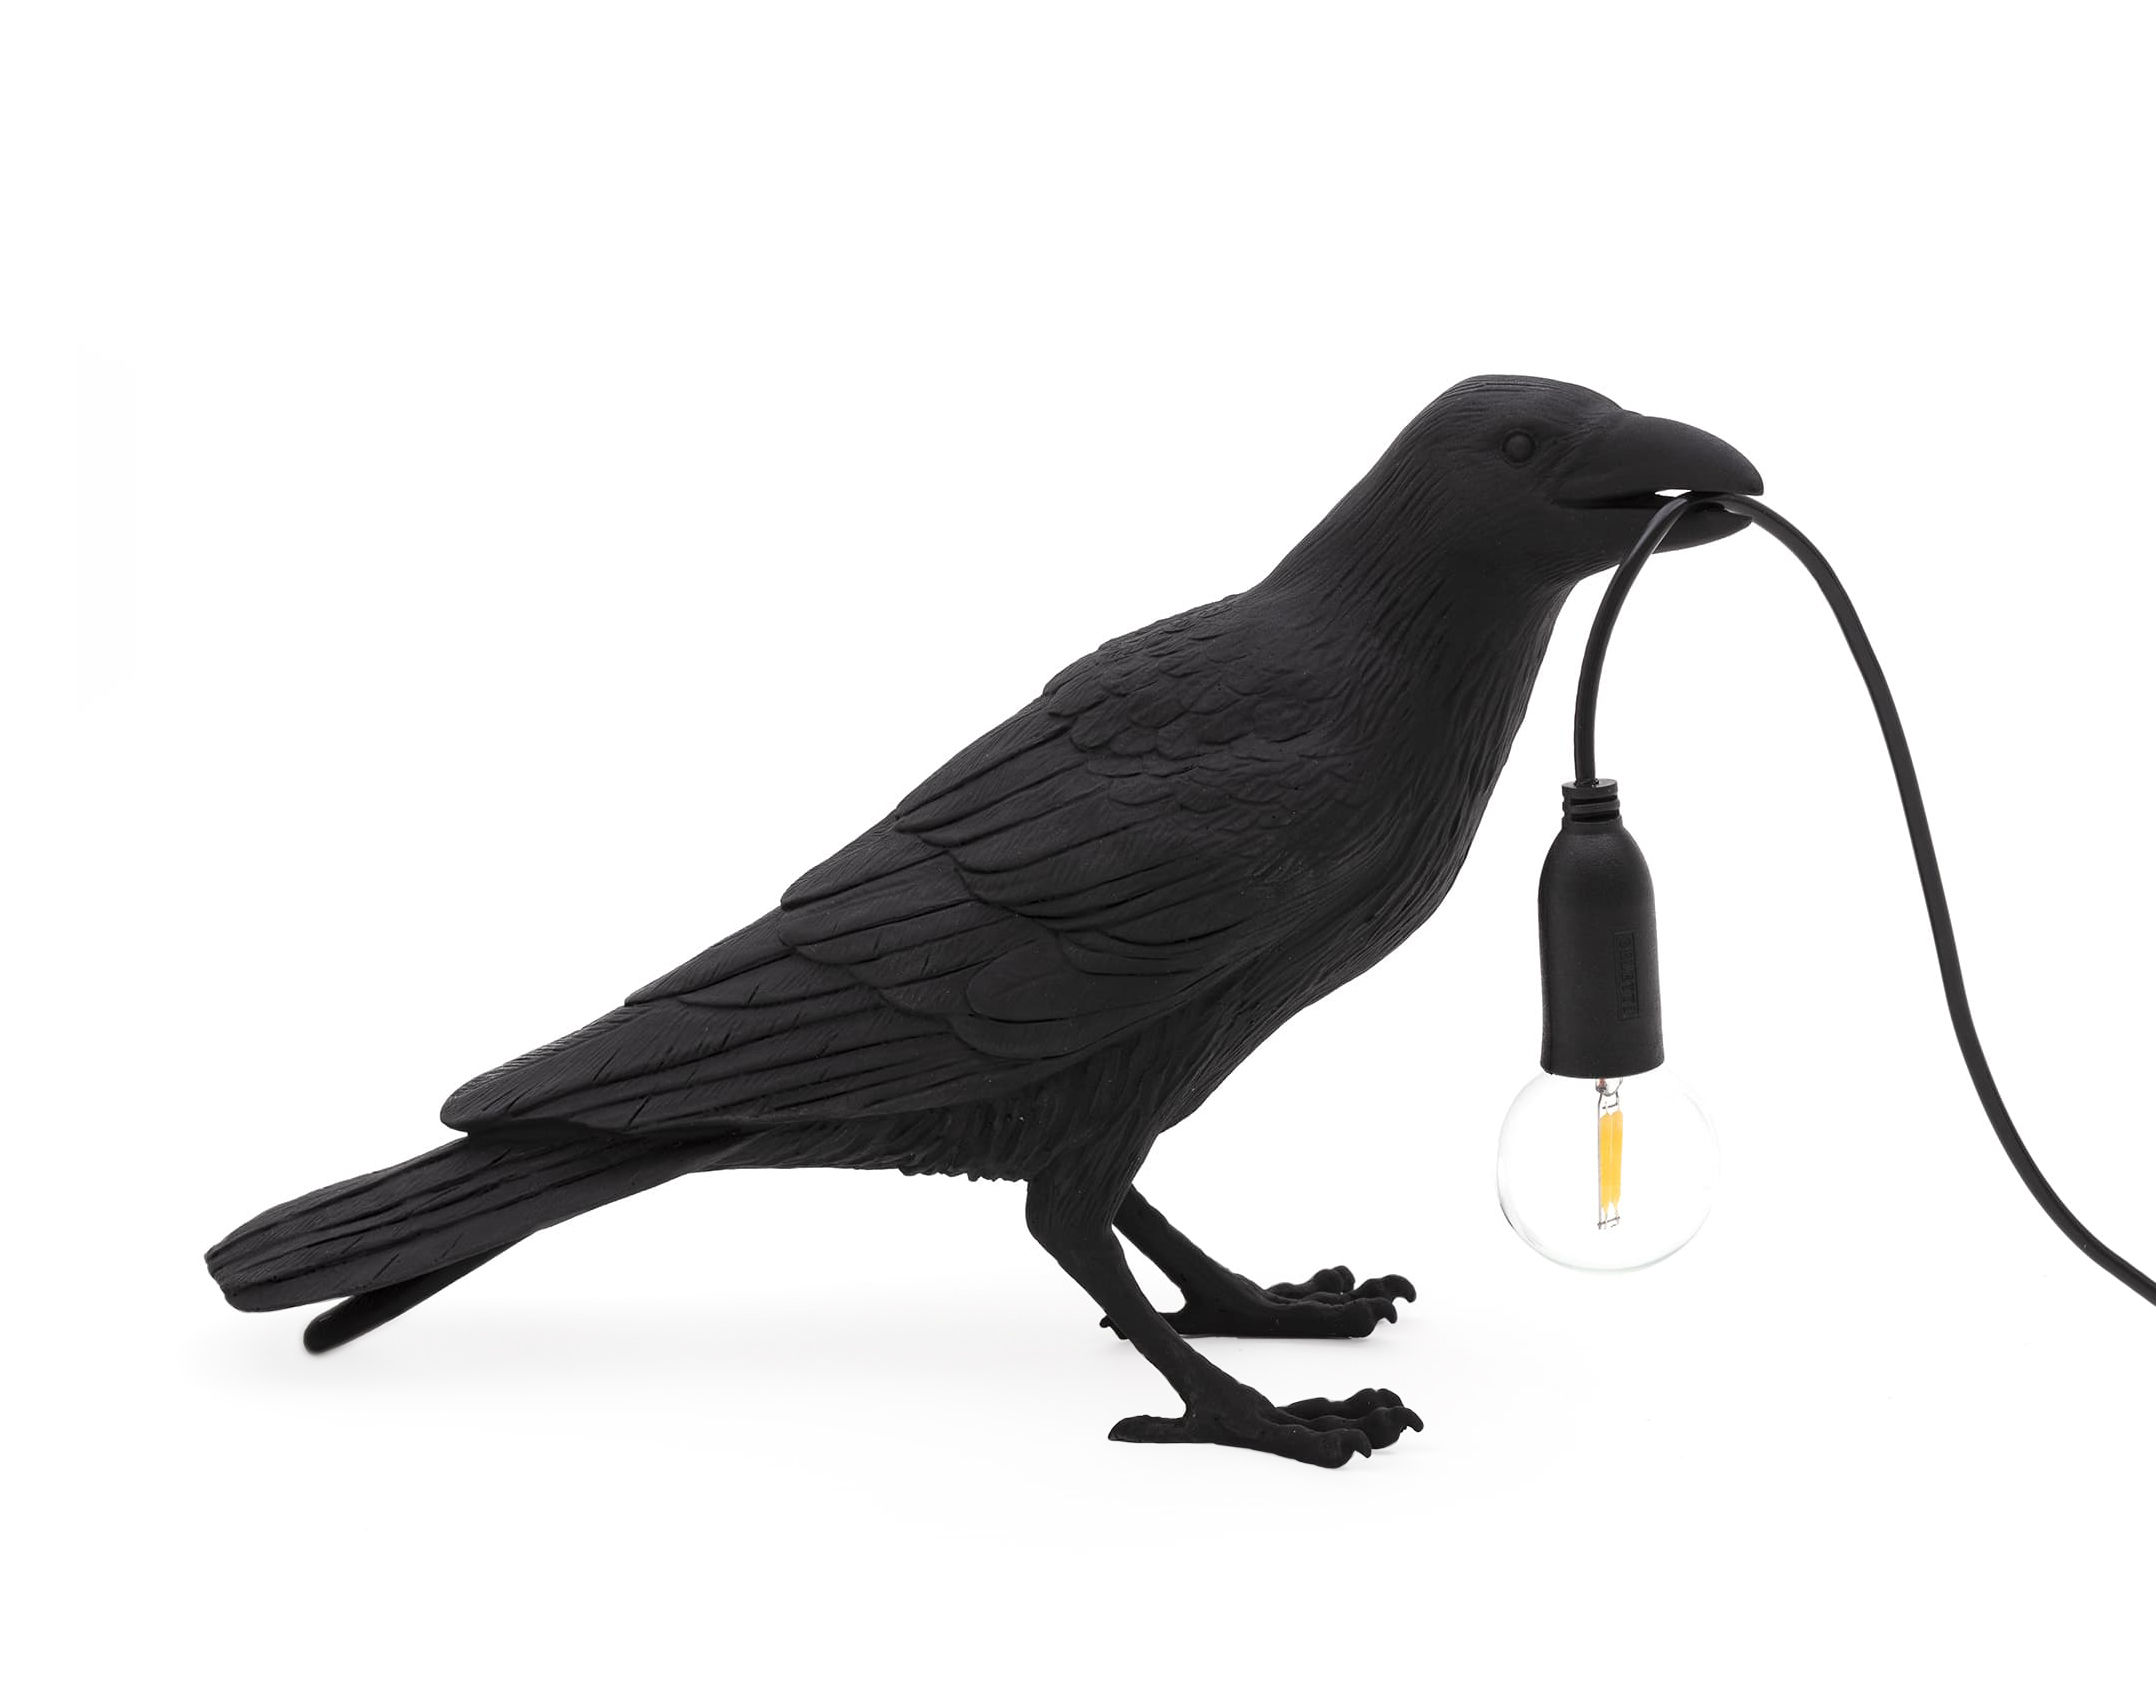 Lighting - Table Lamps - Bird Waiting Table lamp - / Still raven by Seletti - Still raven / Black - Resin